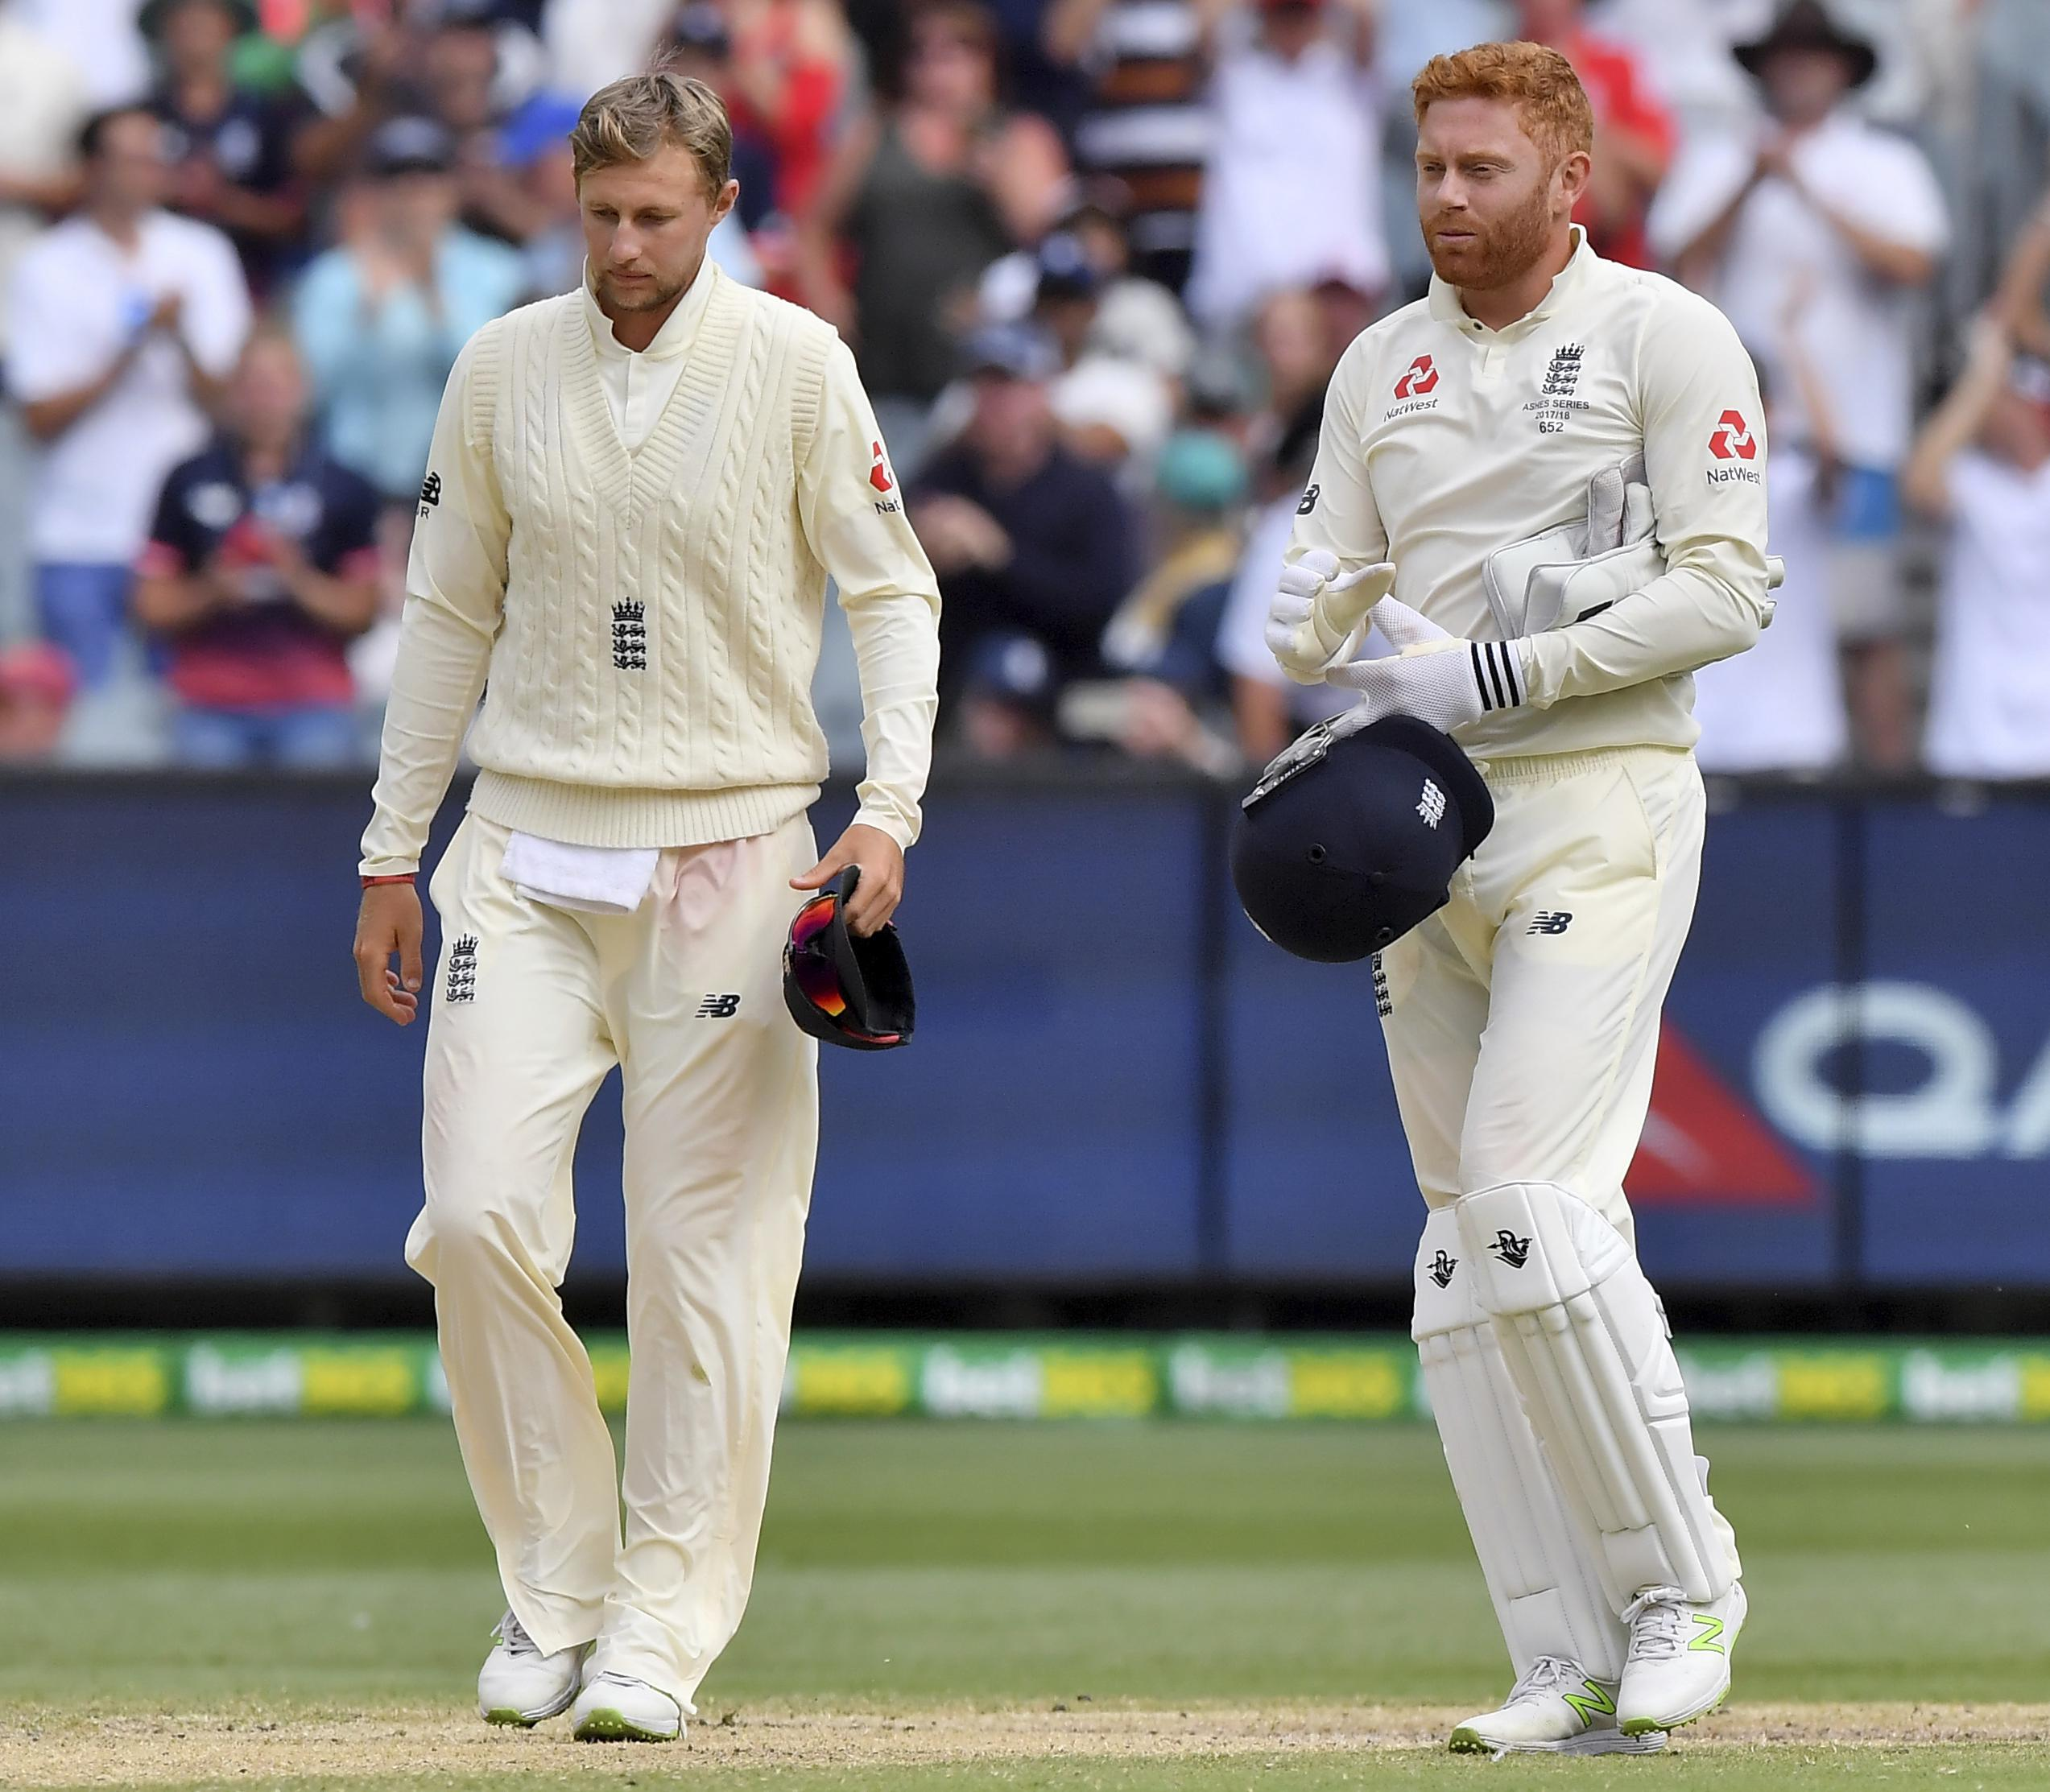 Disappointed Joe Root and Jonny Bairstow leave pitch at MCG after Fourth Test draw